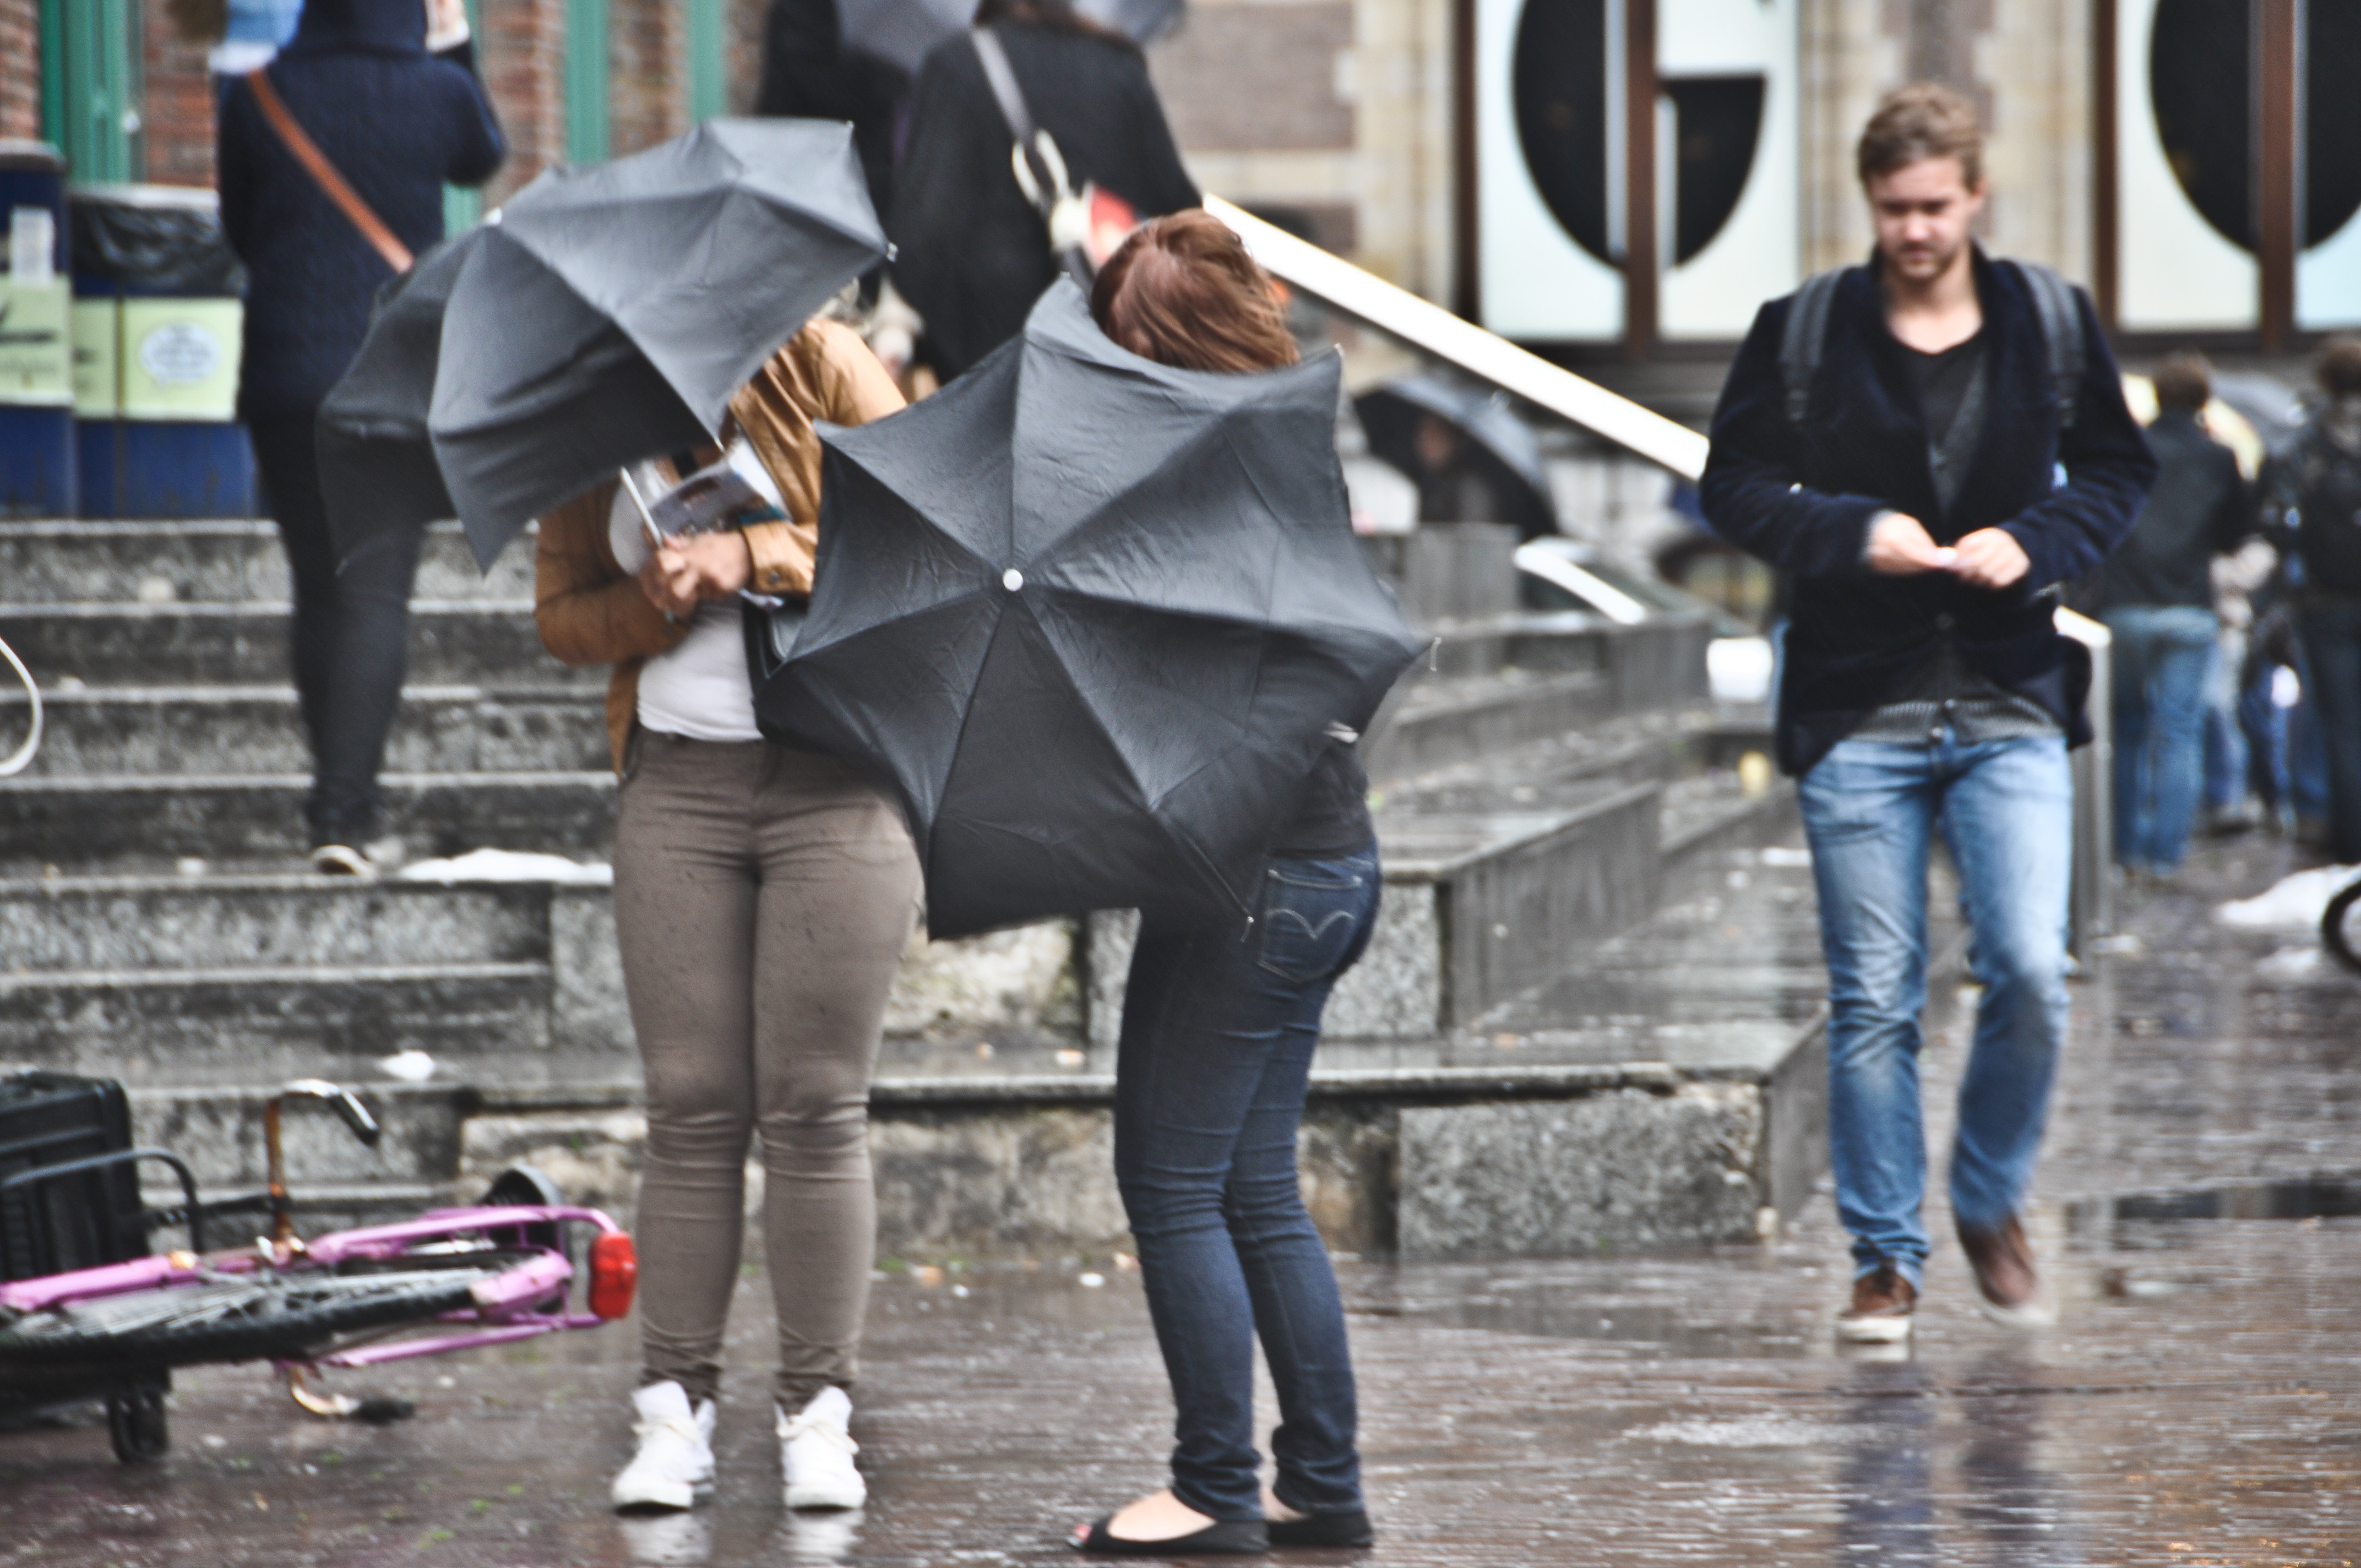 Atlantic storm hits NL: train services reduced, Schiphol warns of delays